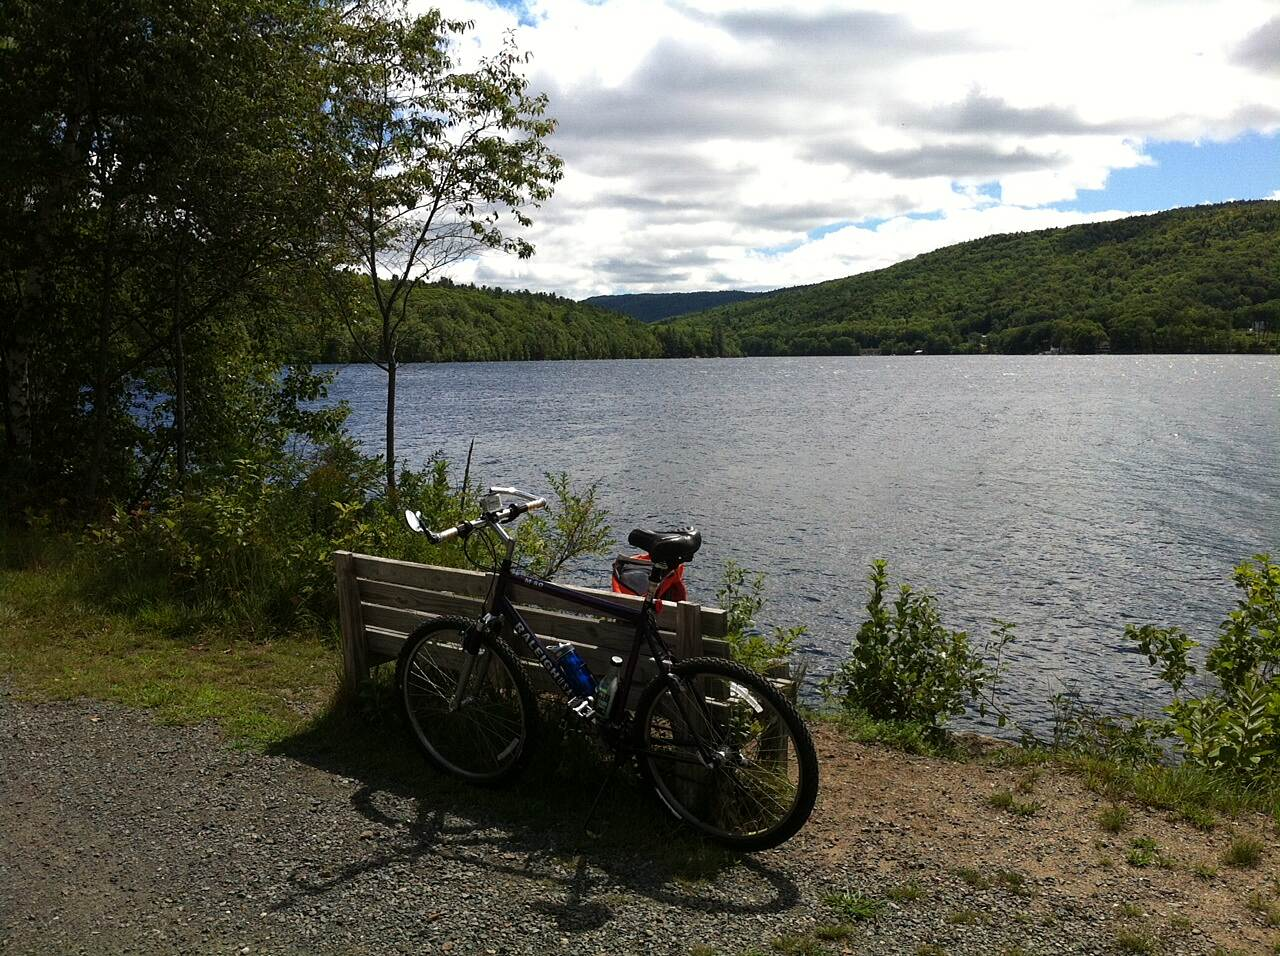 Northern Rail Trail Too chilly to swim Nice day, but windy & cool.  No one on or in the lake.